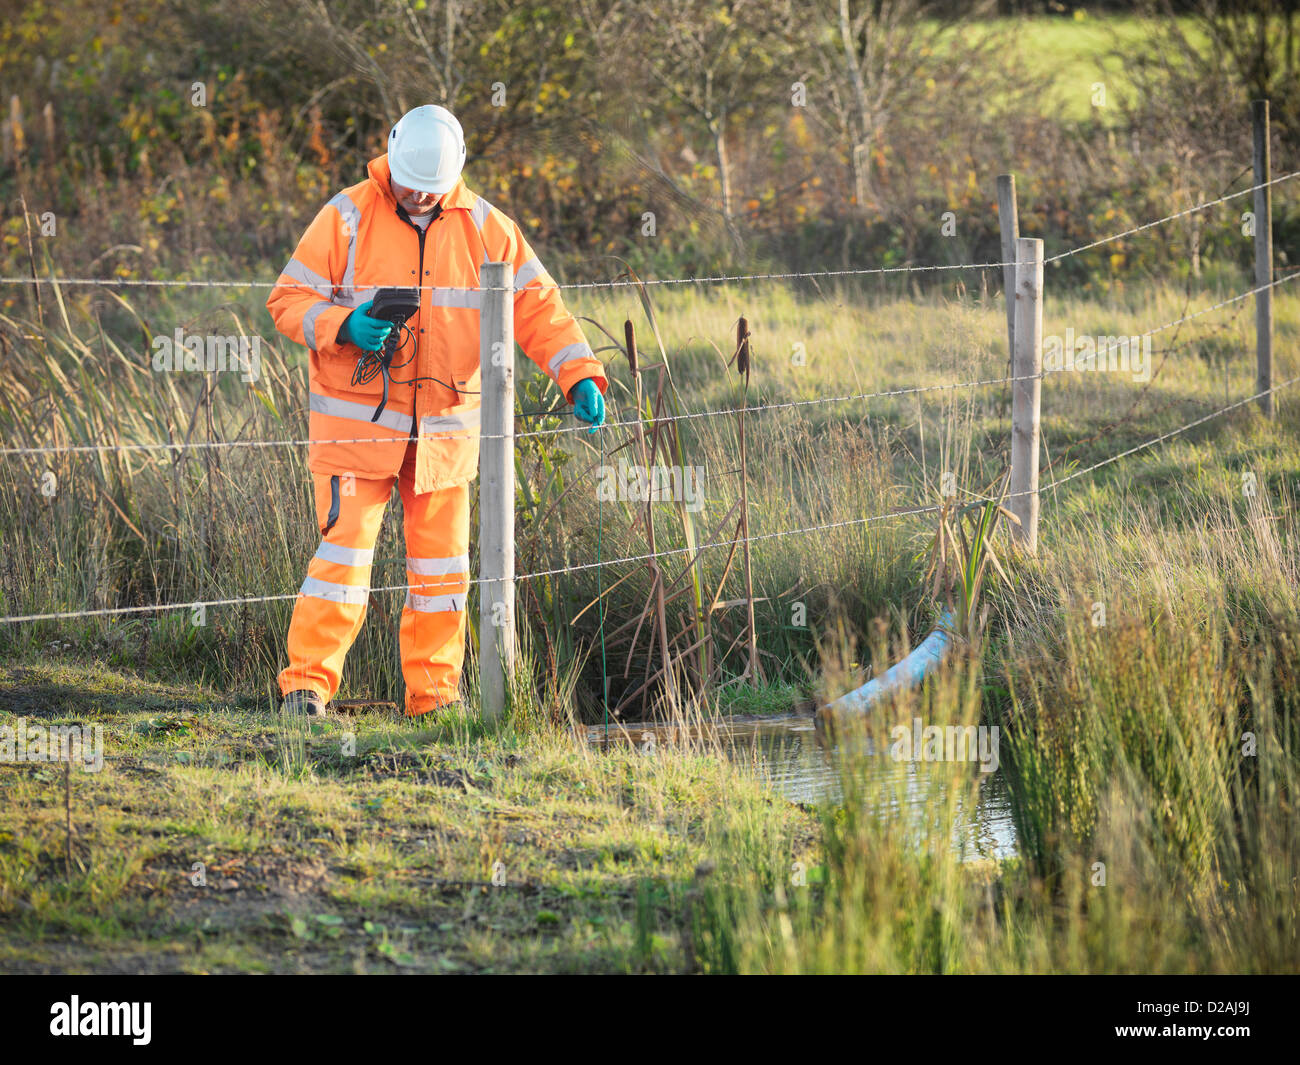 Ecologist examining water in creek - Stock Image